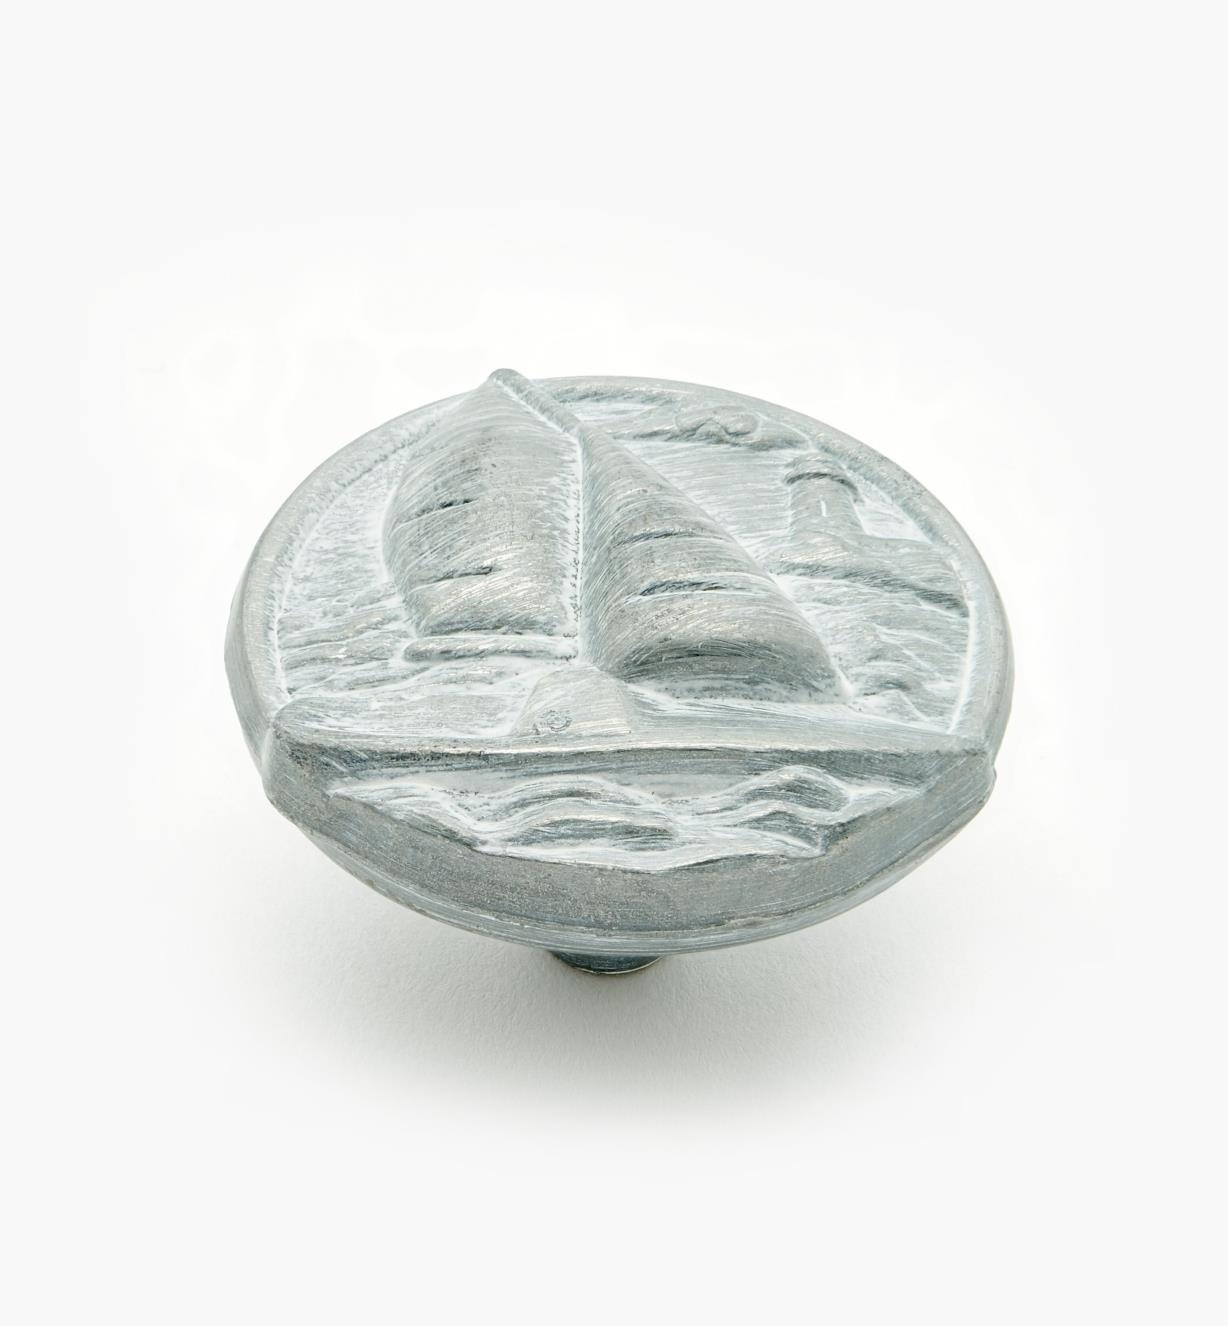 "03W2808 - South Seas 1 1/2"" Sailboat Knob, ea."